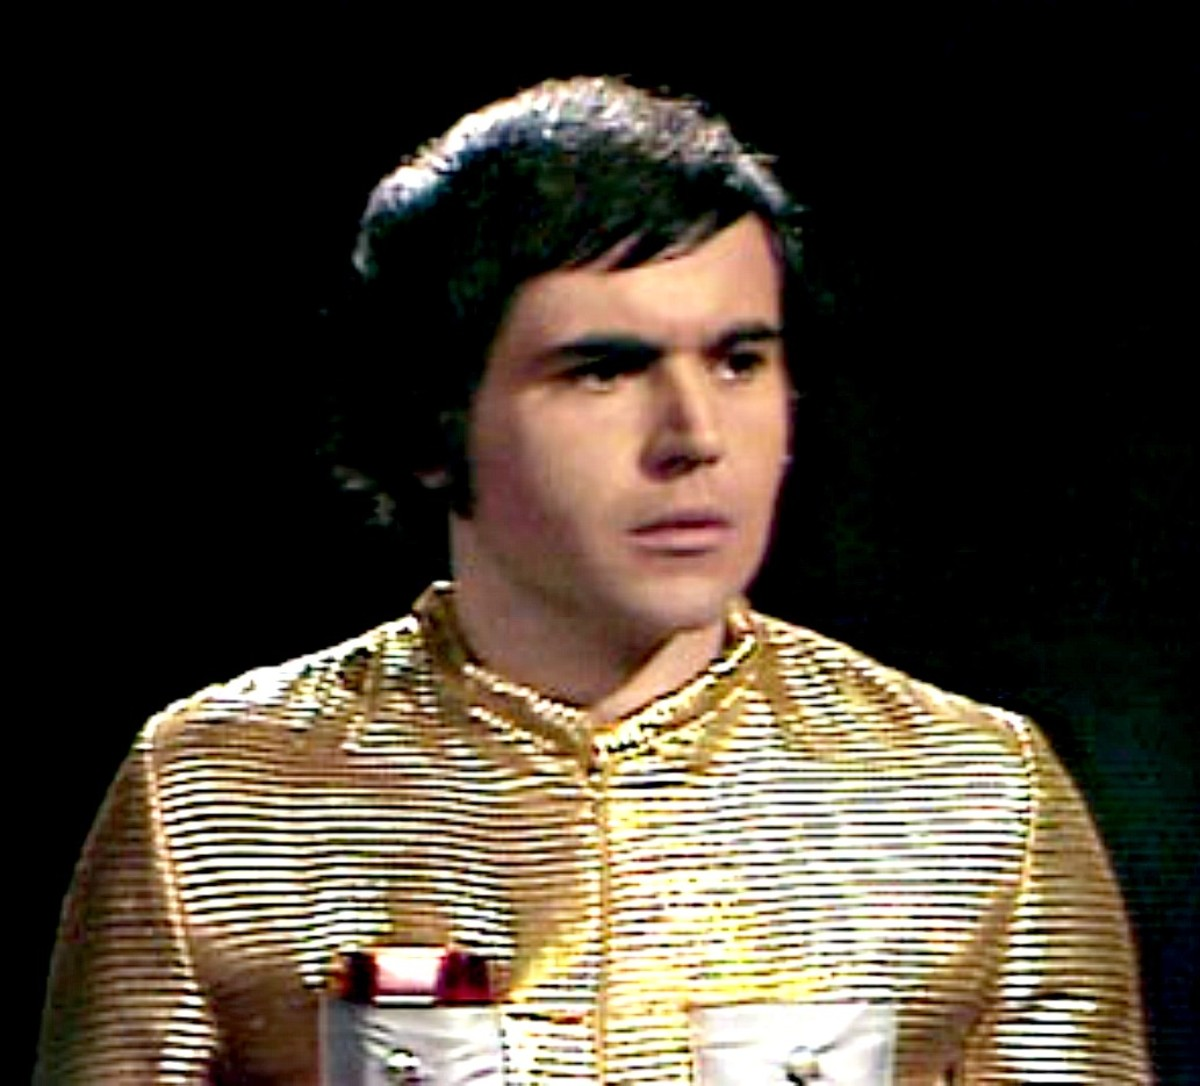 An alien played by Walter Koenig is sent on a reconnaissance mission to the Star Lost and his ship crashed into the Star Lost Ark and the alien know as Oro is now stealing parts from the ark to repair his ship to return to his home world.